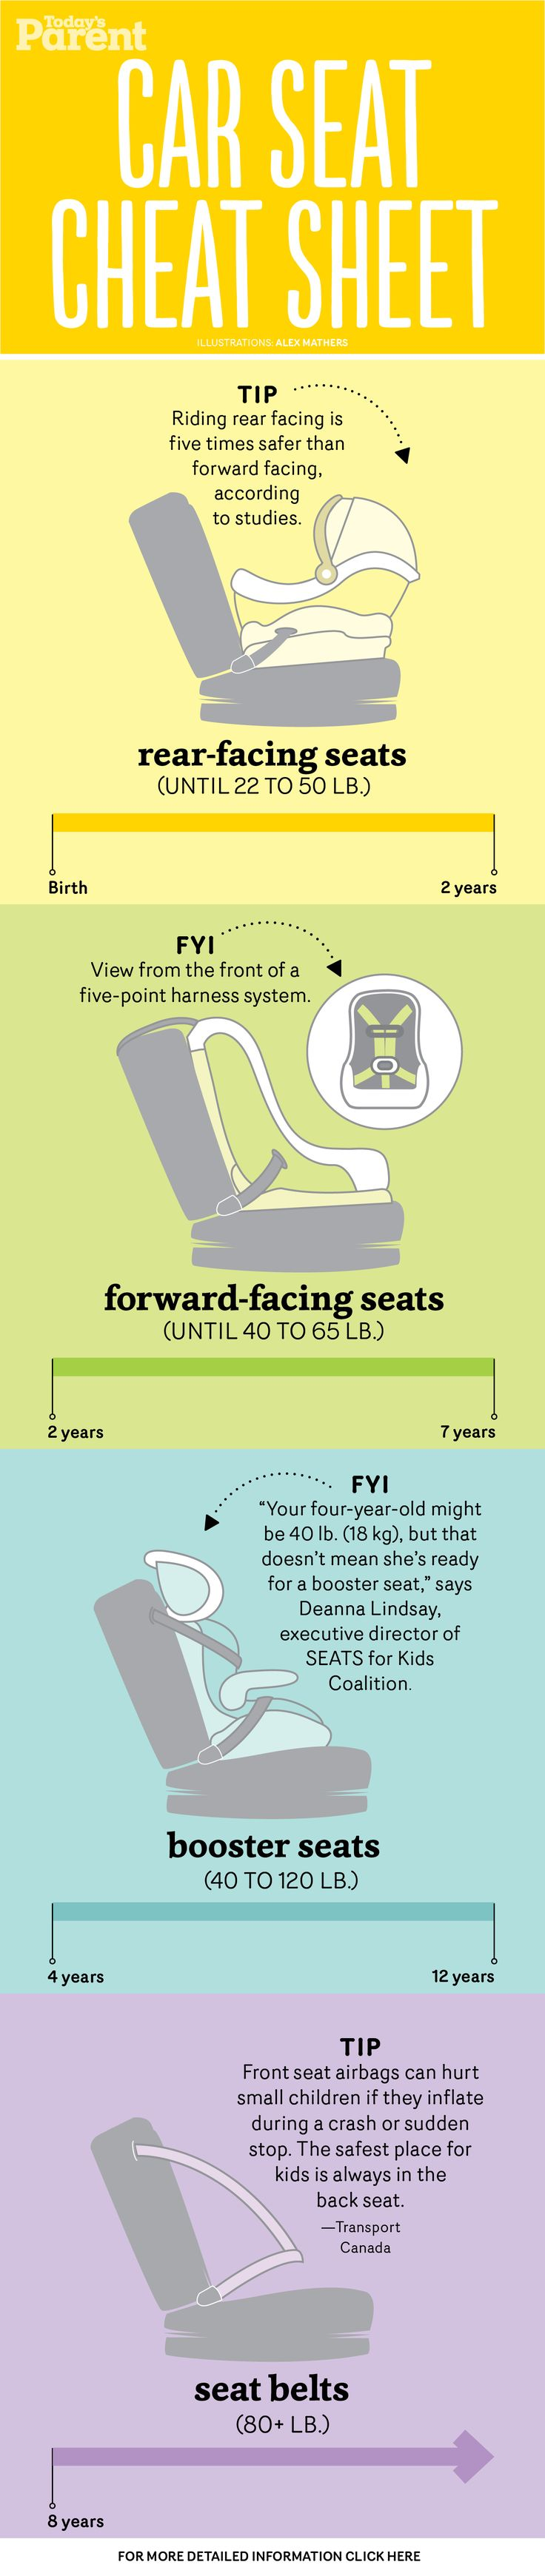 Car seats are so important!